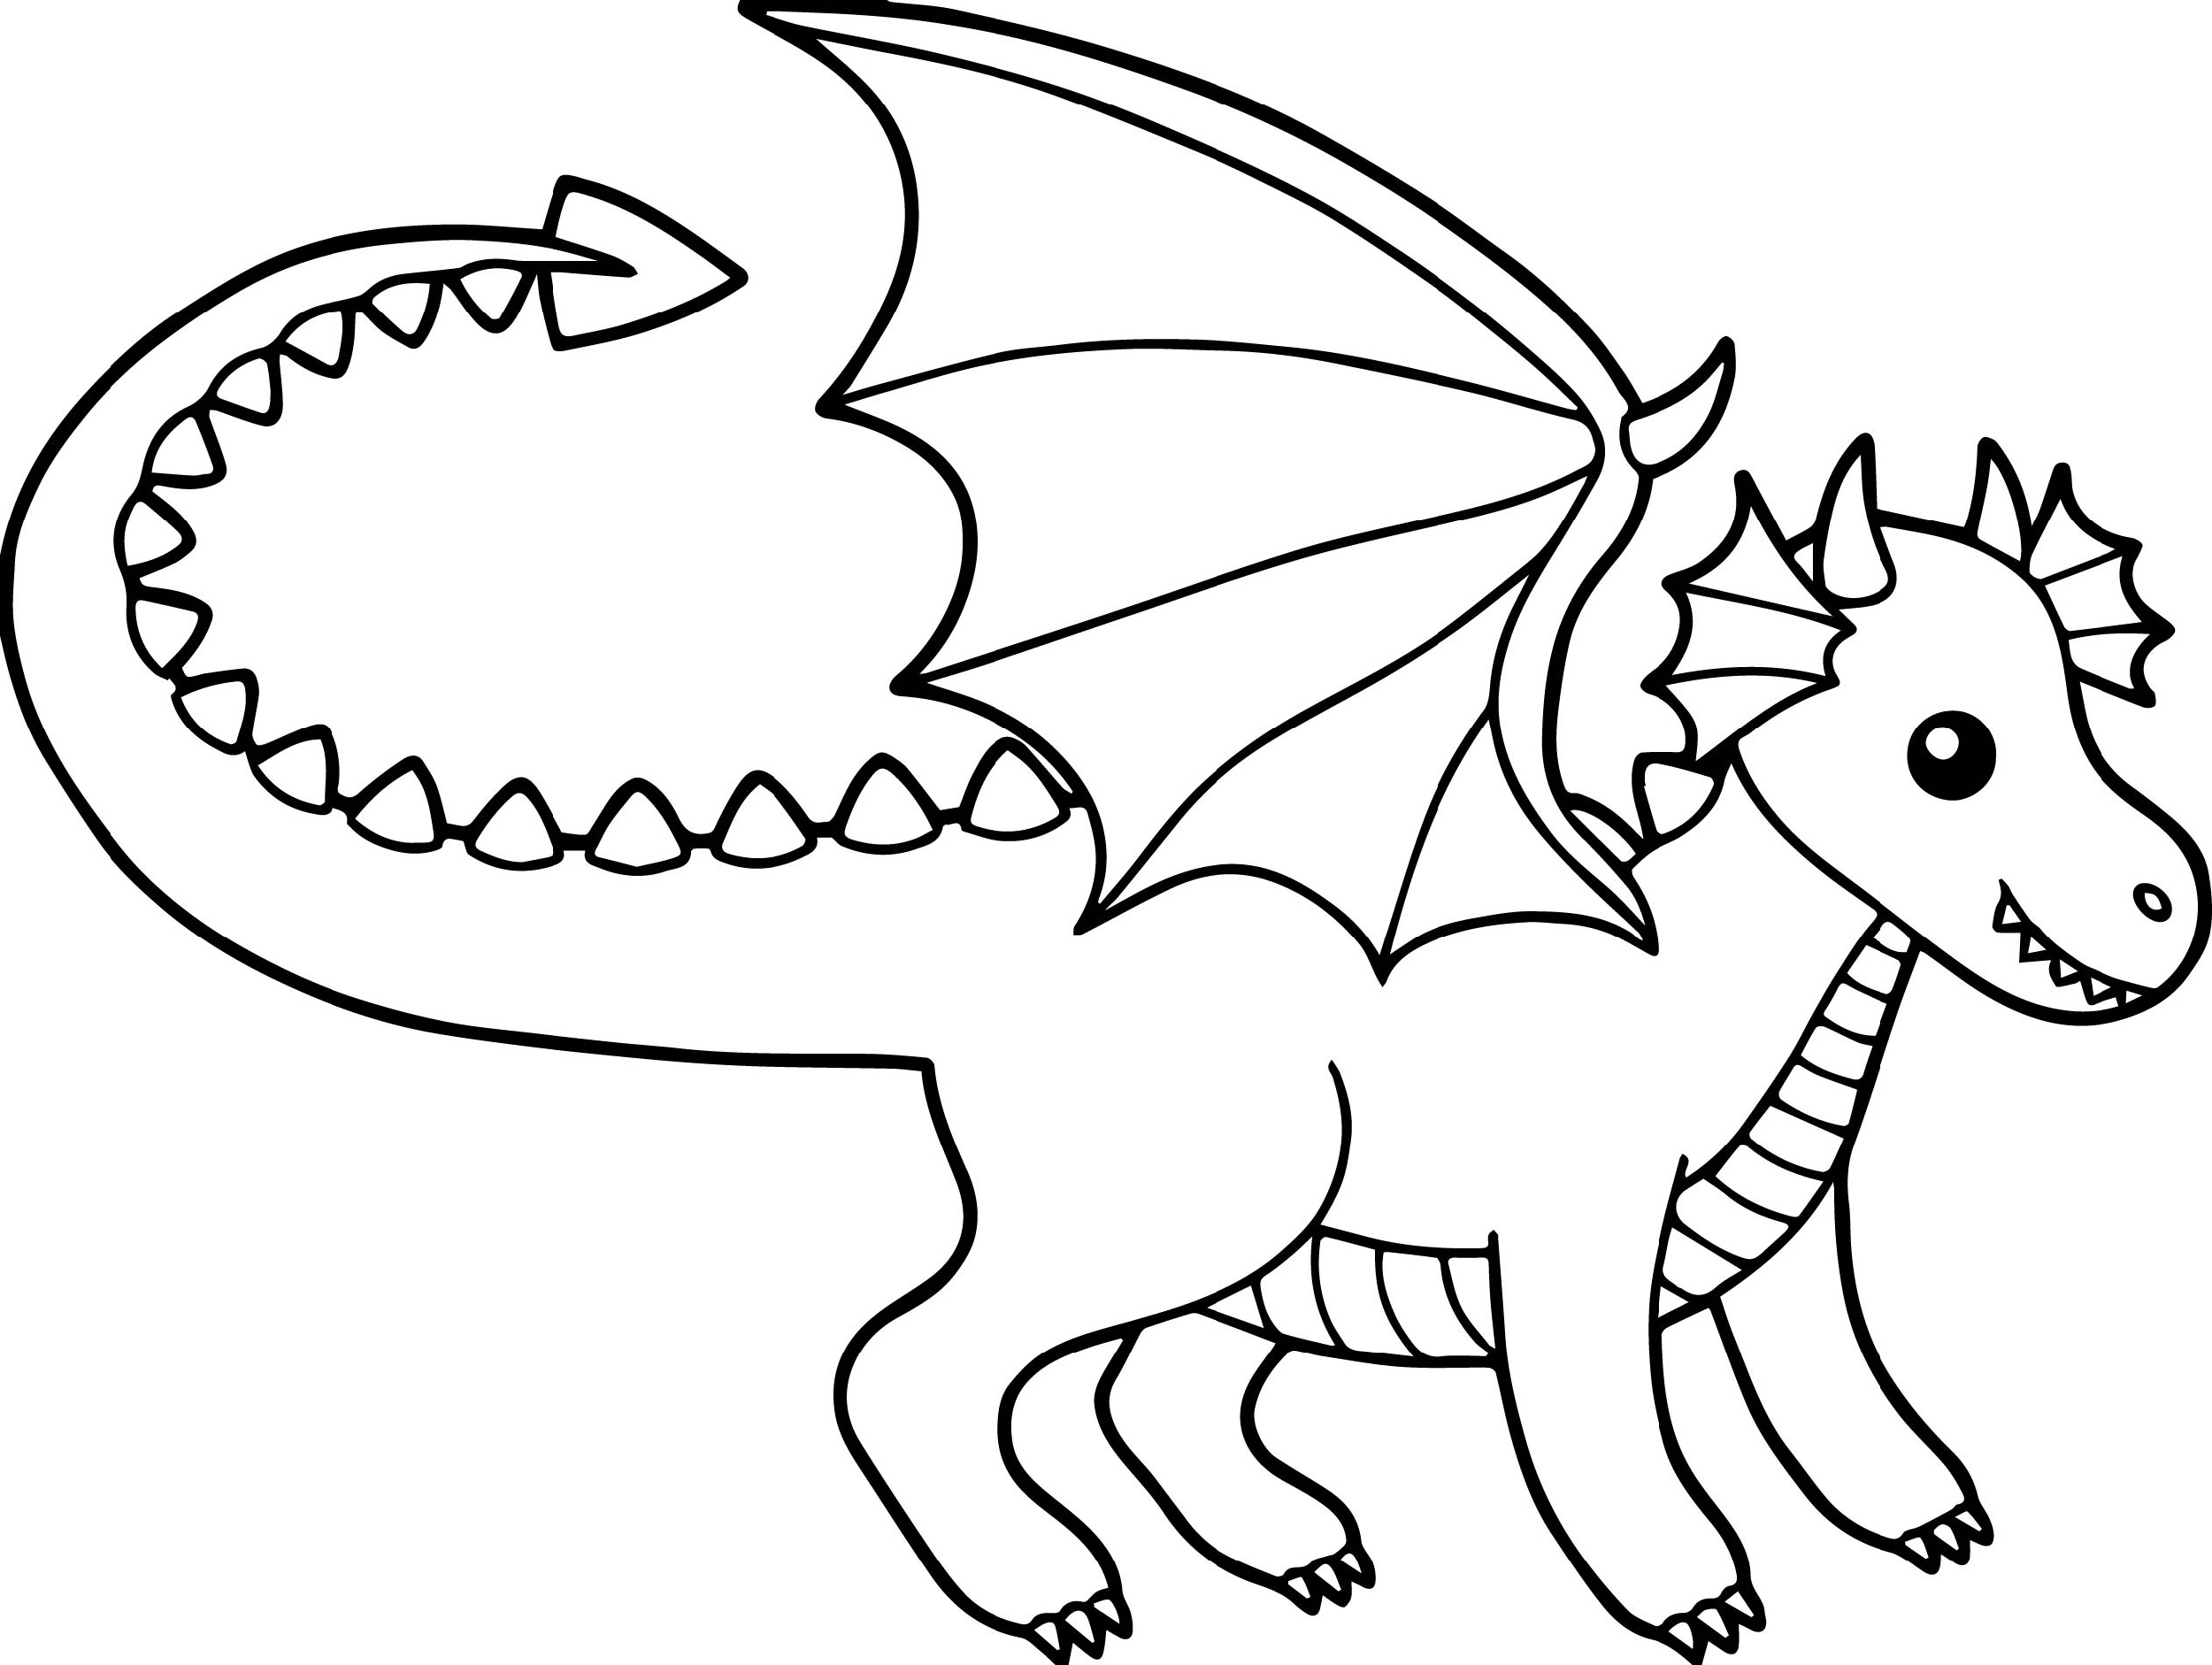 Baby Dragon Coloring Pages To Print